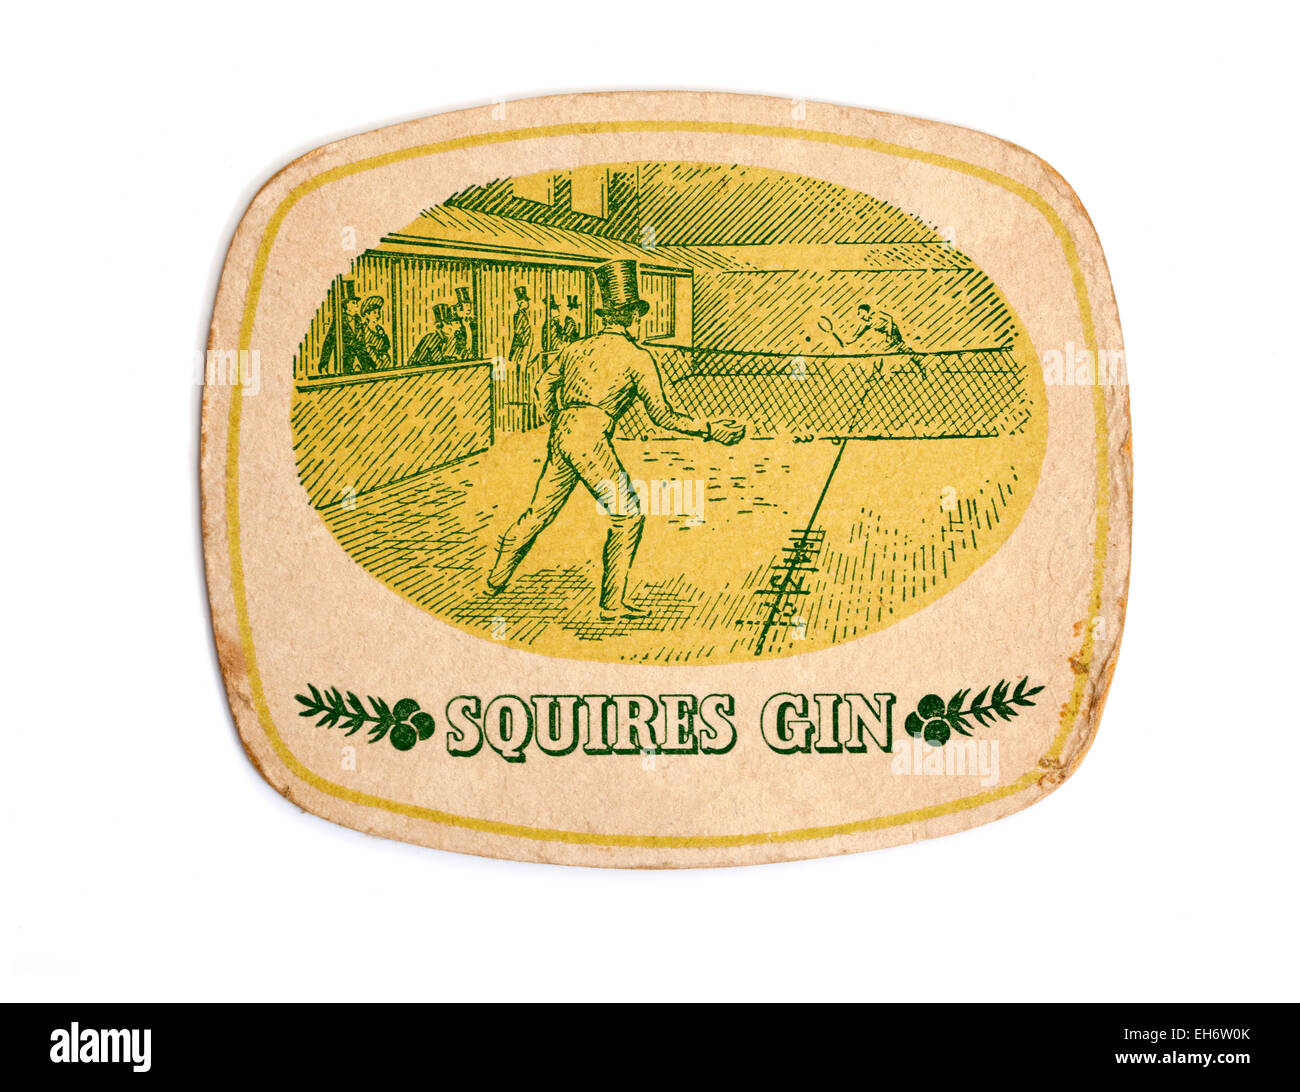 Vintage British Beermat Advertising Squires Gin - Stock Image